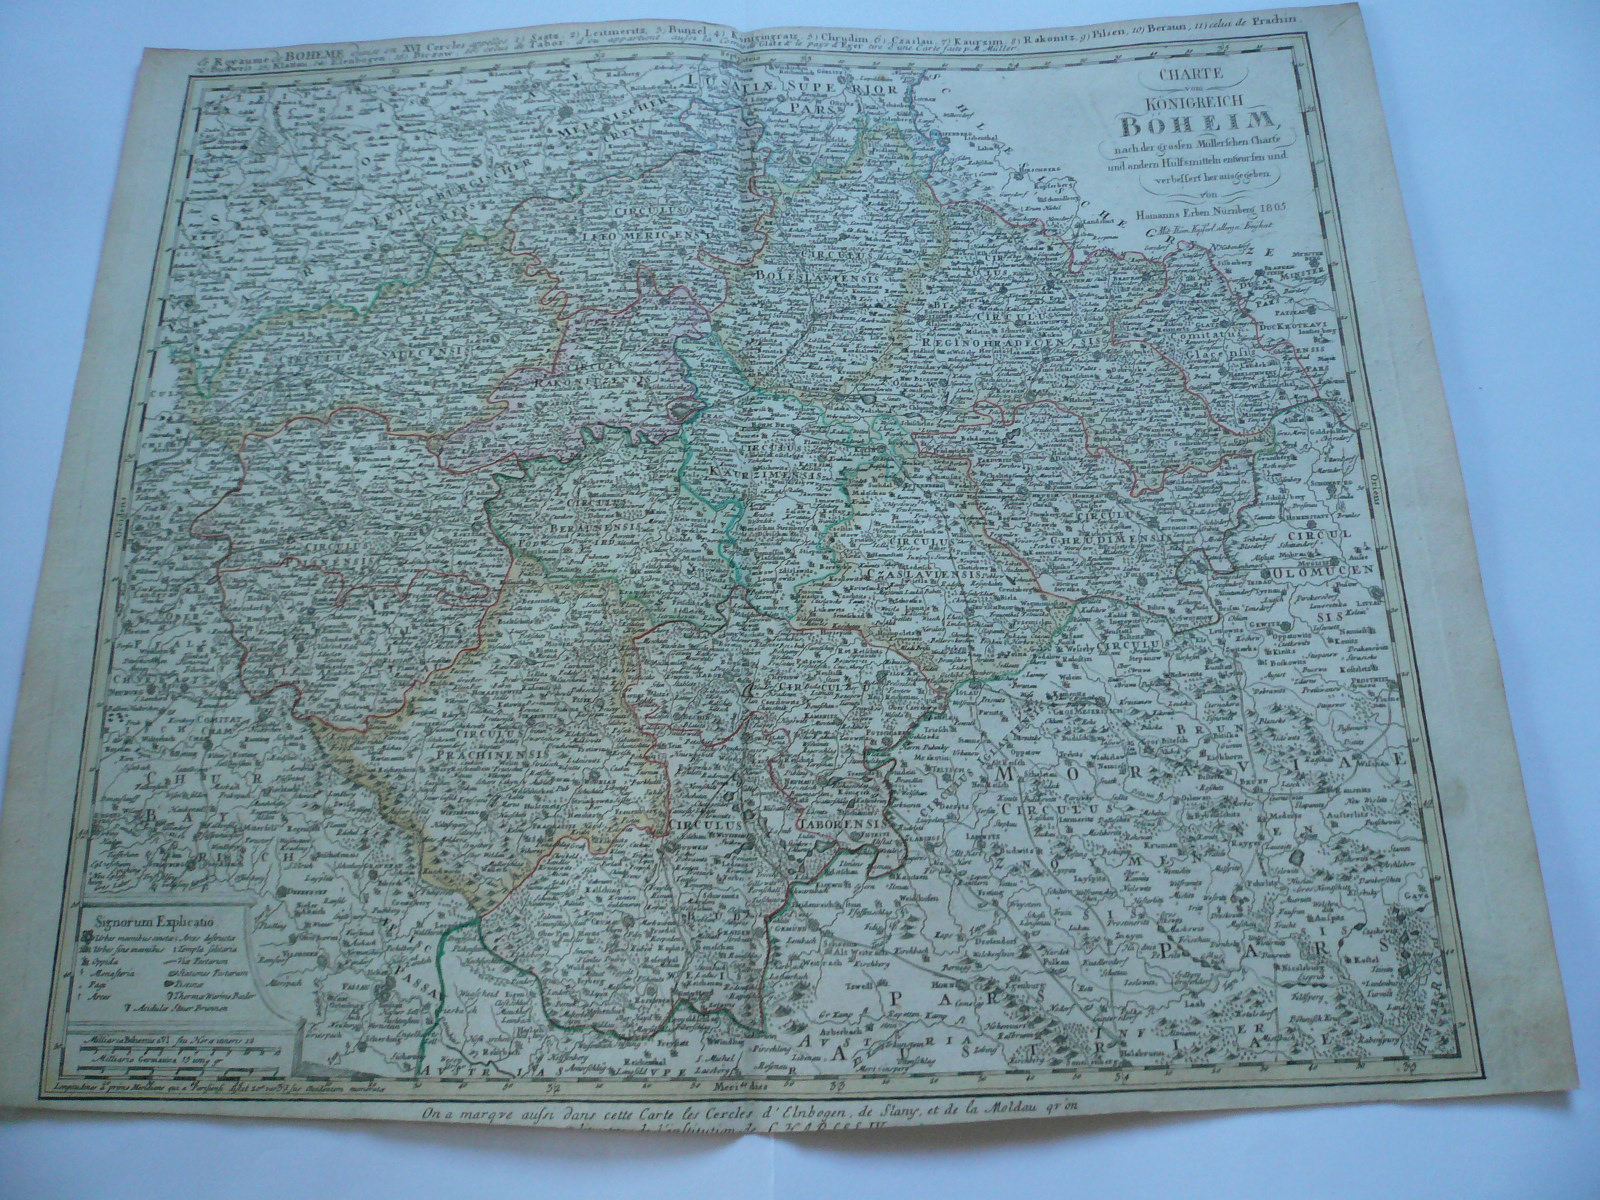 Bohemia, anno 1805, map by Homann Heirs